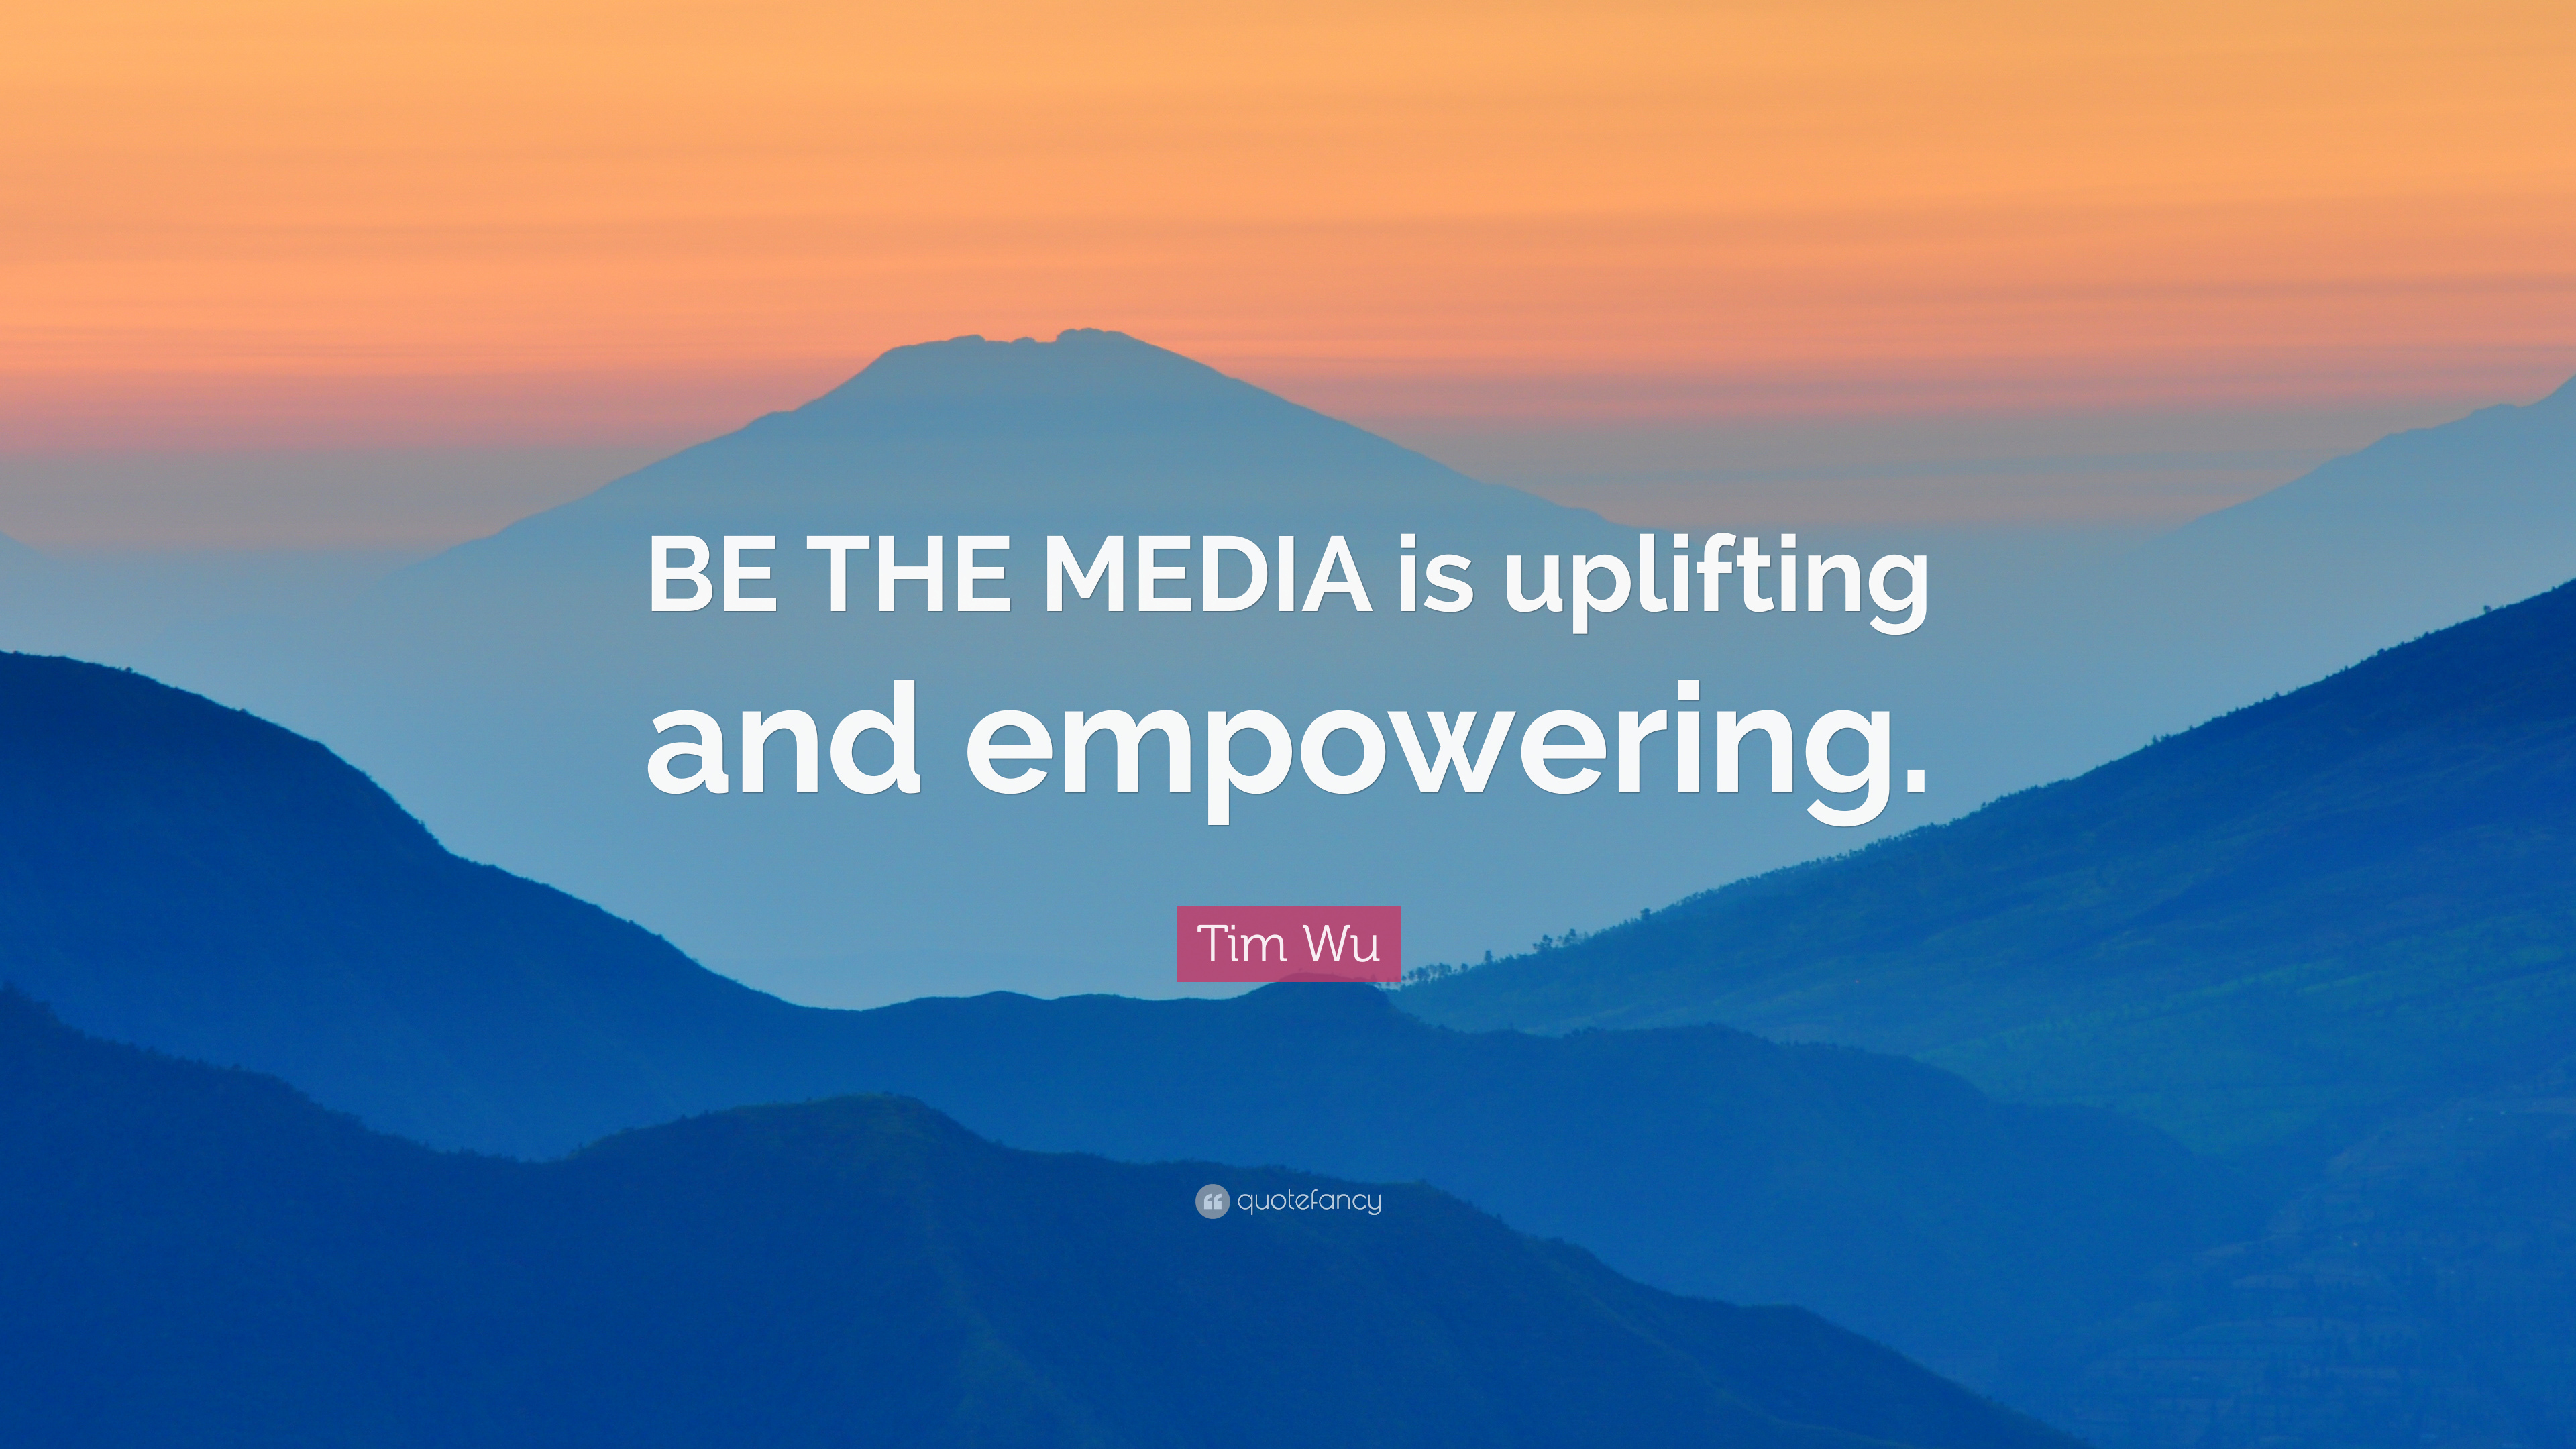 Empowering Quotes Tim Wu Quotes 6 Wallpapers  Quotefancy